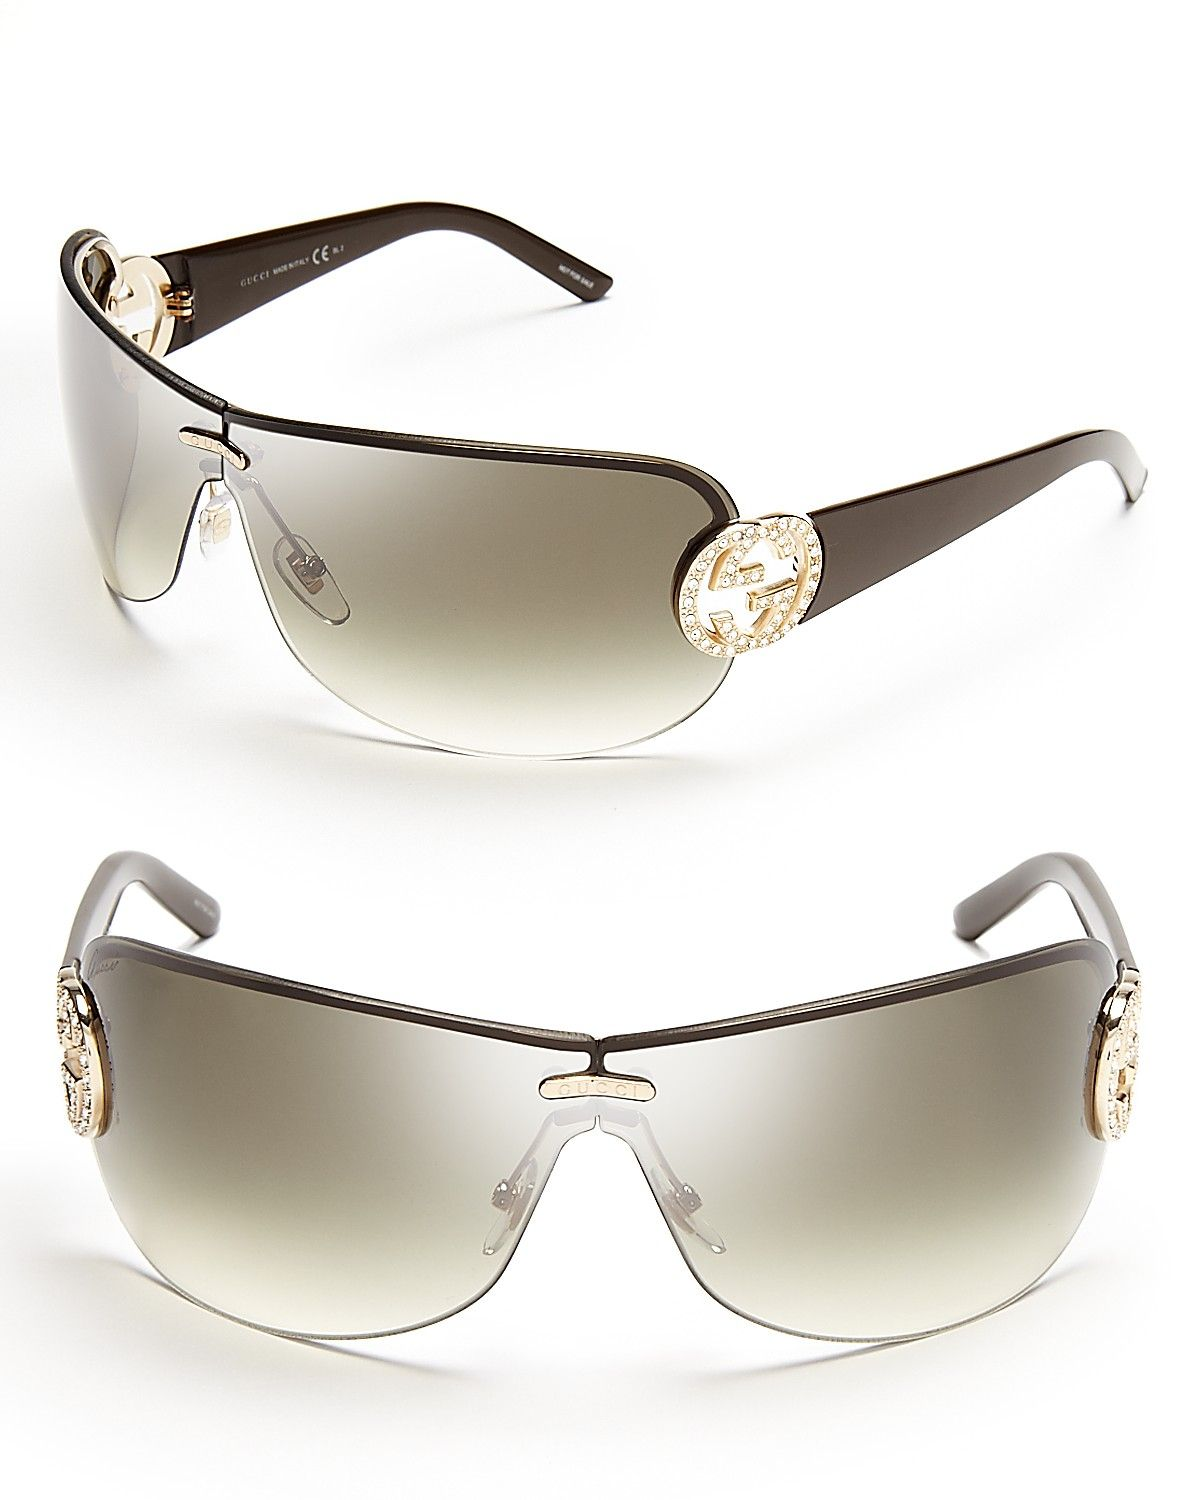 5b22e754a4a Gucci Gradient Shield Sunglasses With Crystal Bridle Temple ...